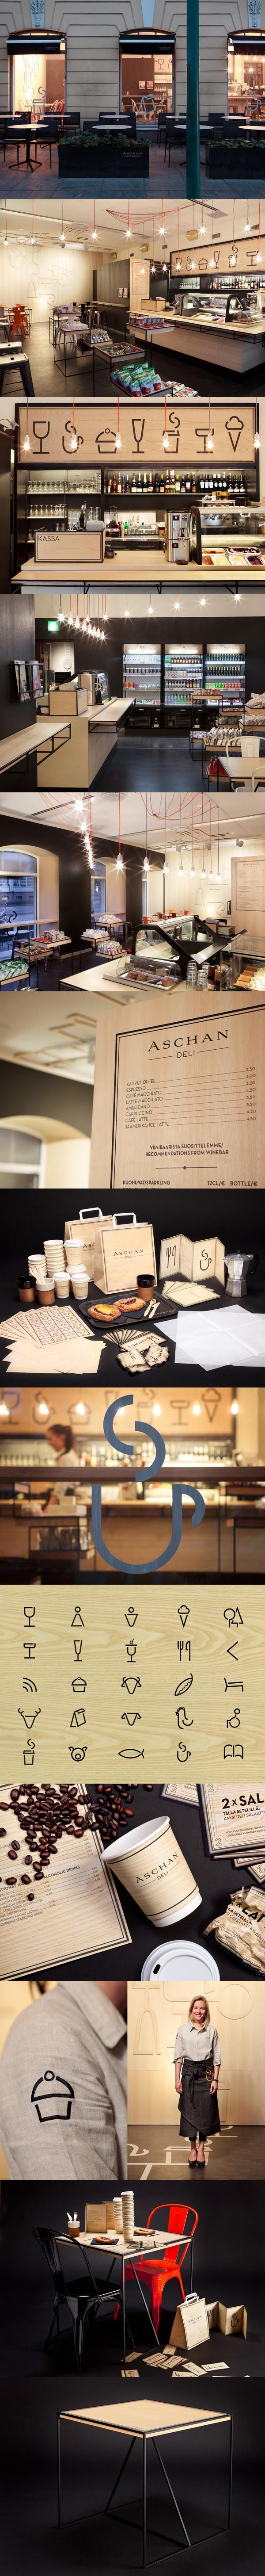 www.behance.net/gallery/Aschan-Deli/2185241 Great deli #packaging #branding #marketing PD